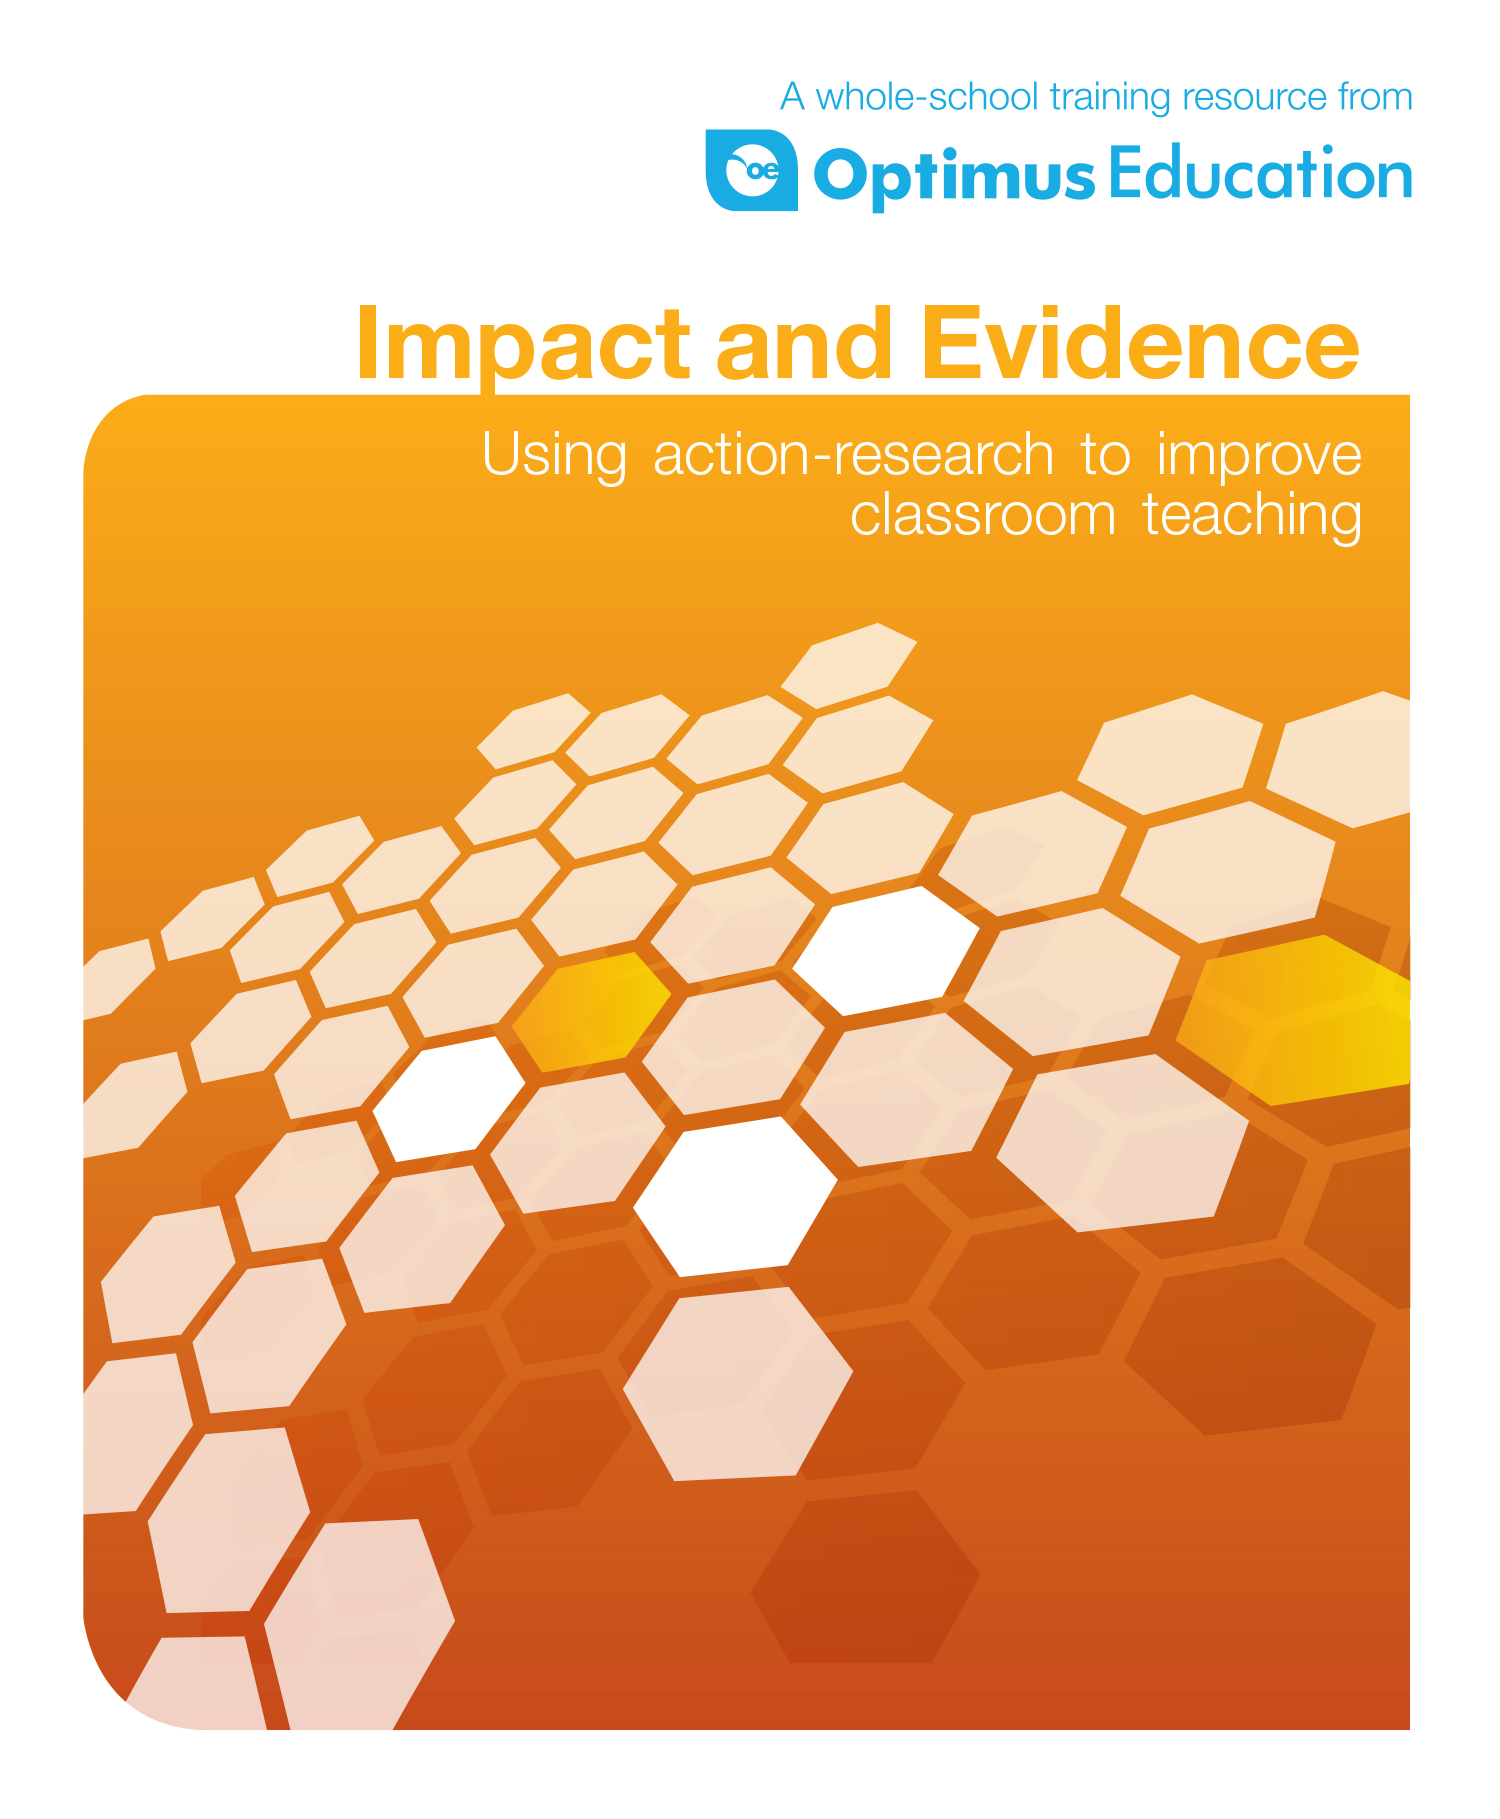 Impact and Evidence: Using action research to improve classroom teaching